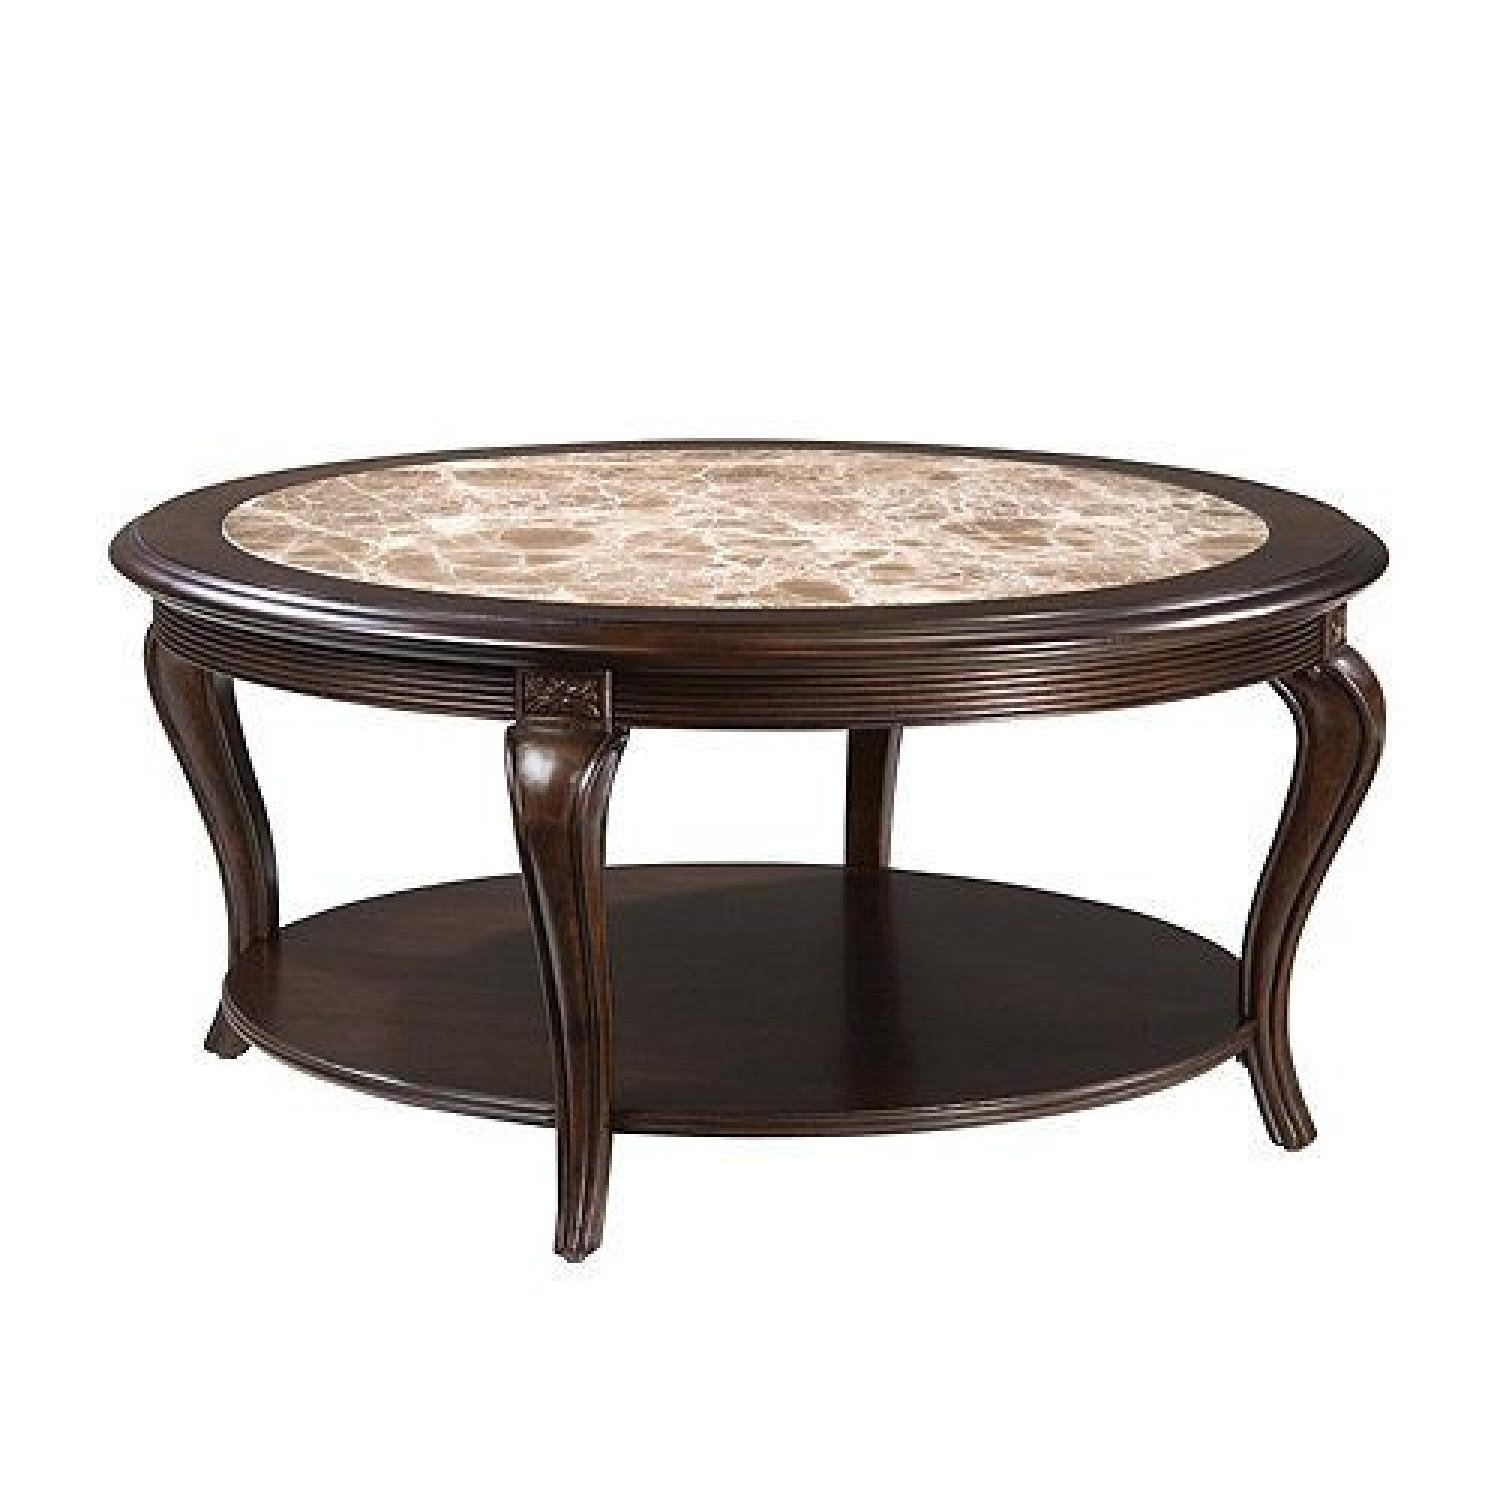 raymour flanigan round marble top cherry wood coffee table